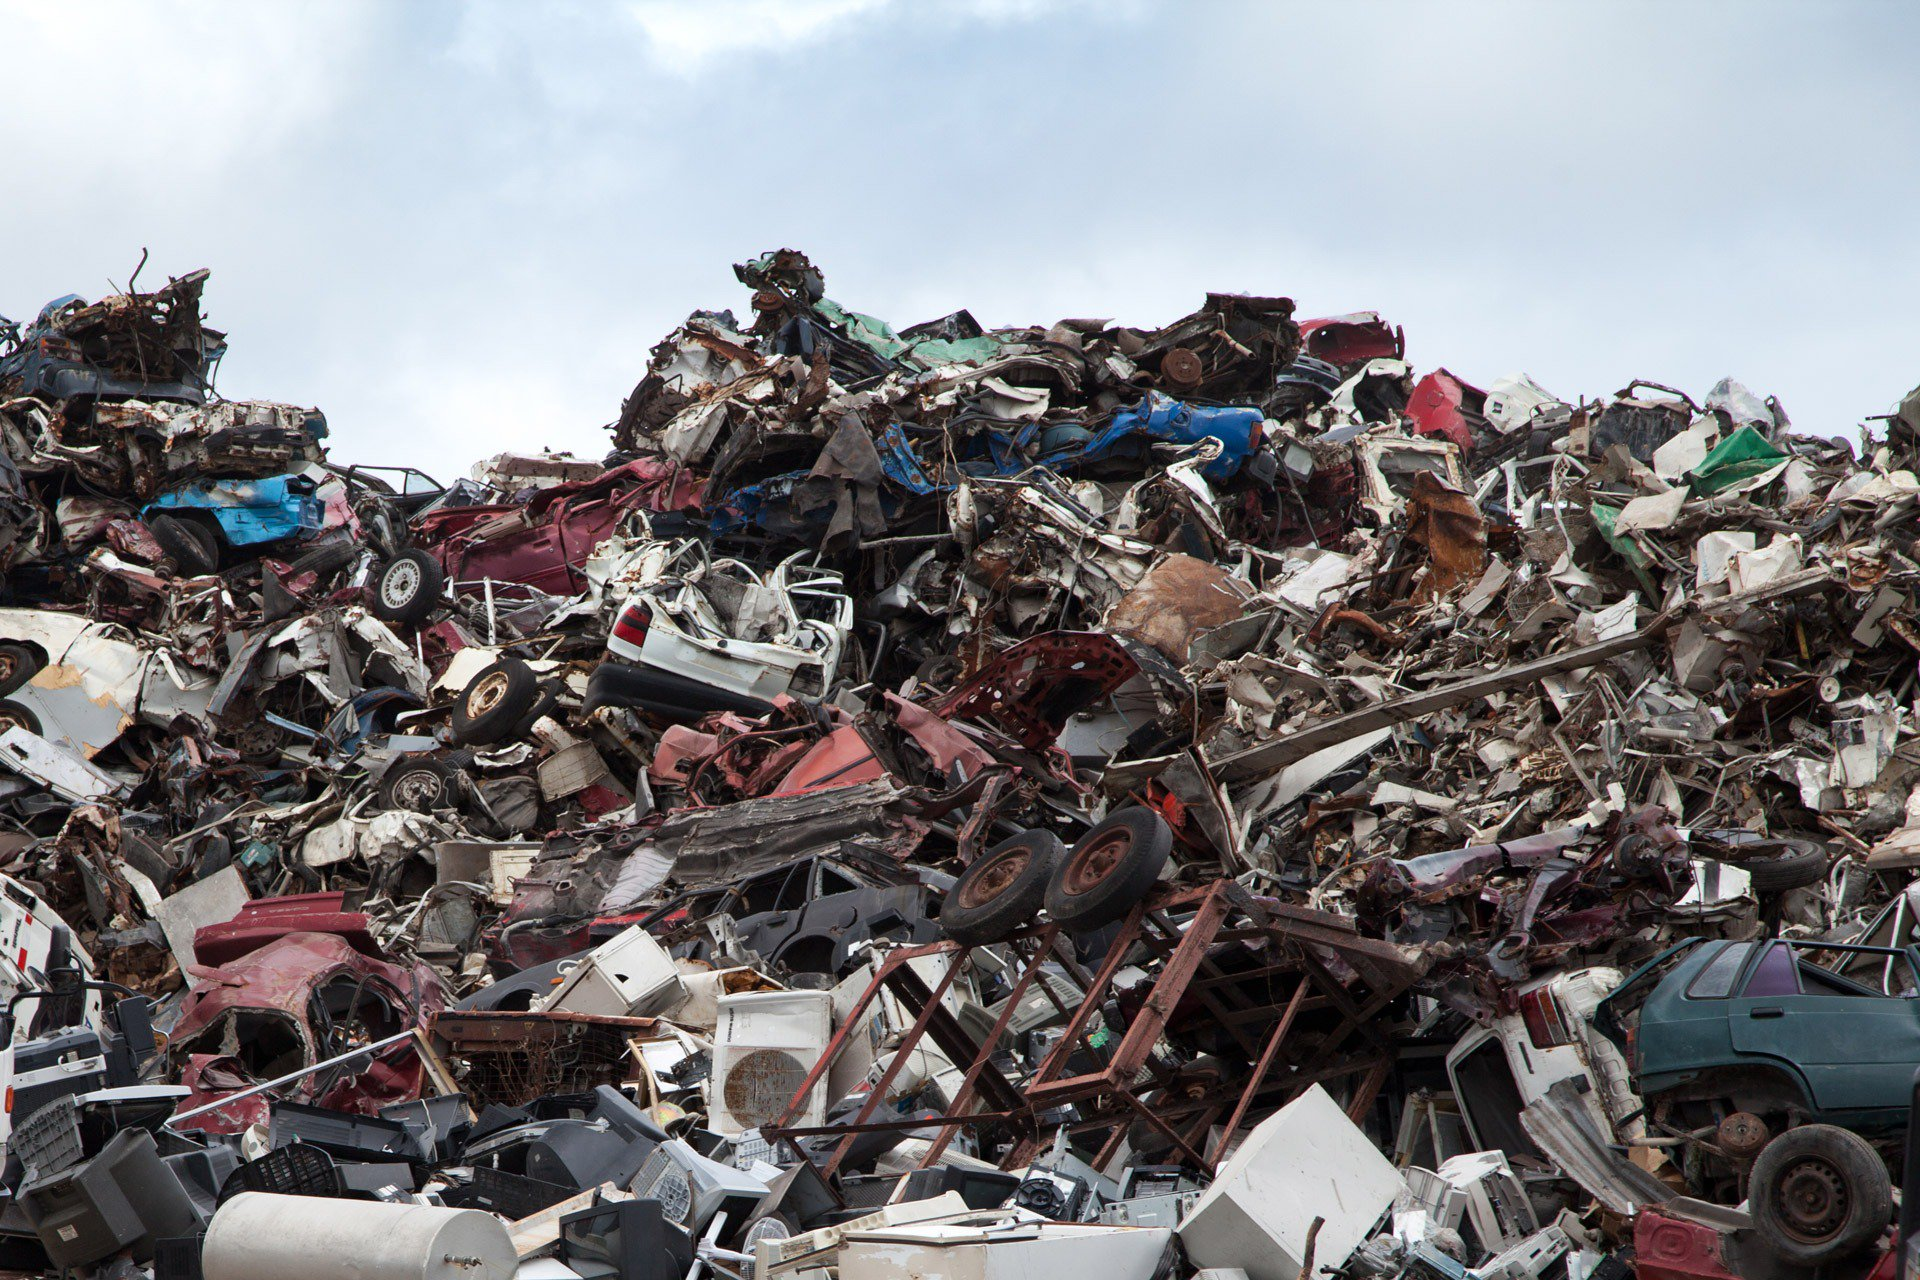 Get the Facts: 11 Truths About Scrapping Metals from Junk Cars